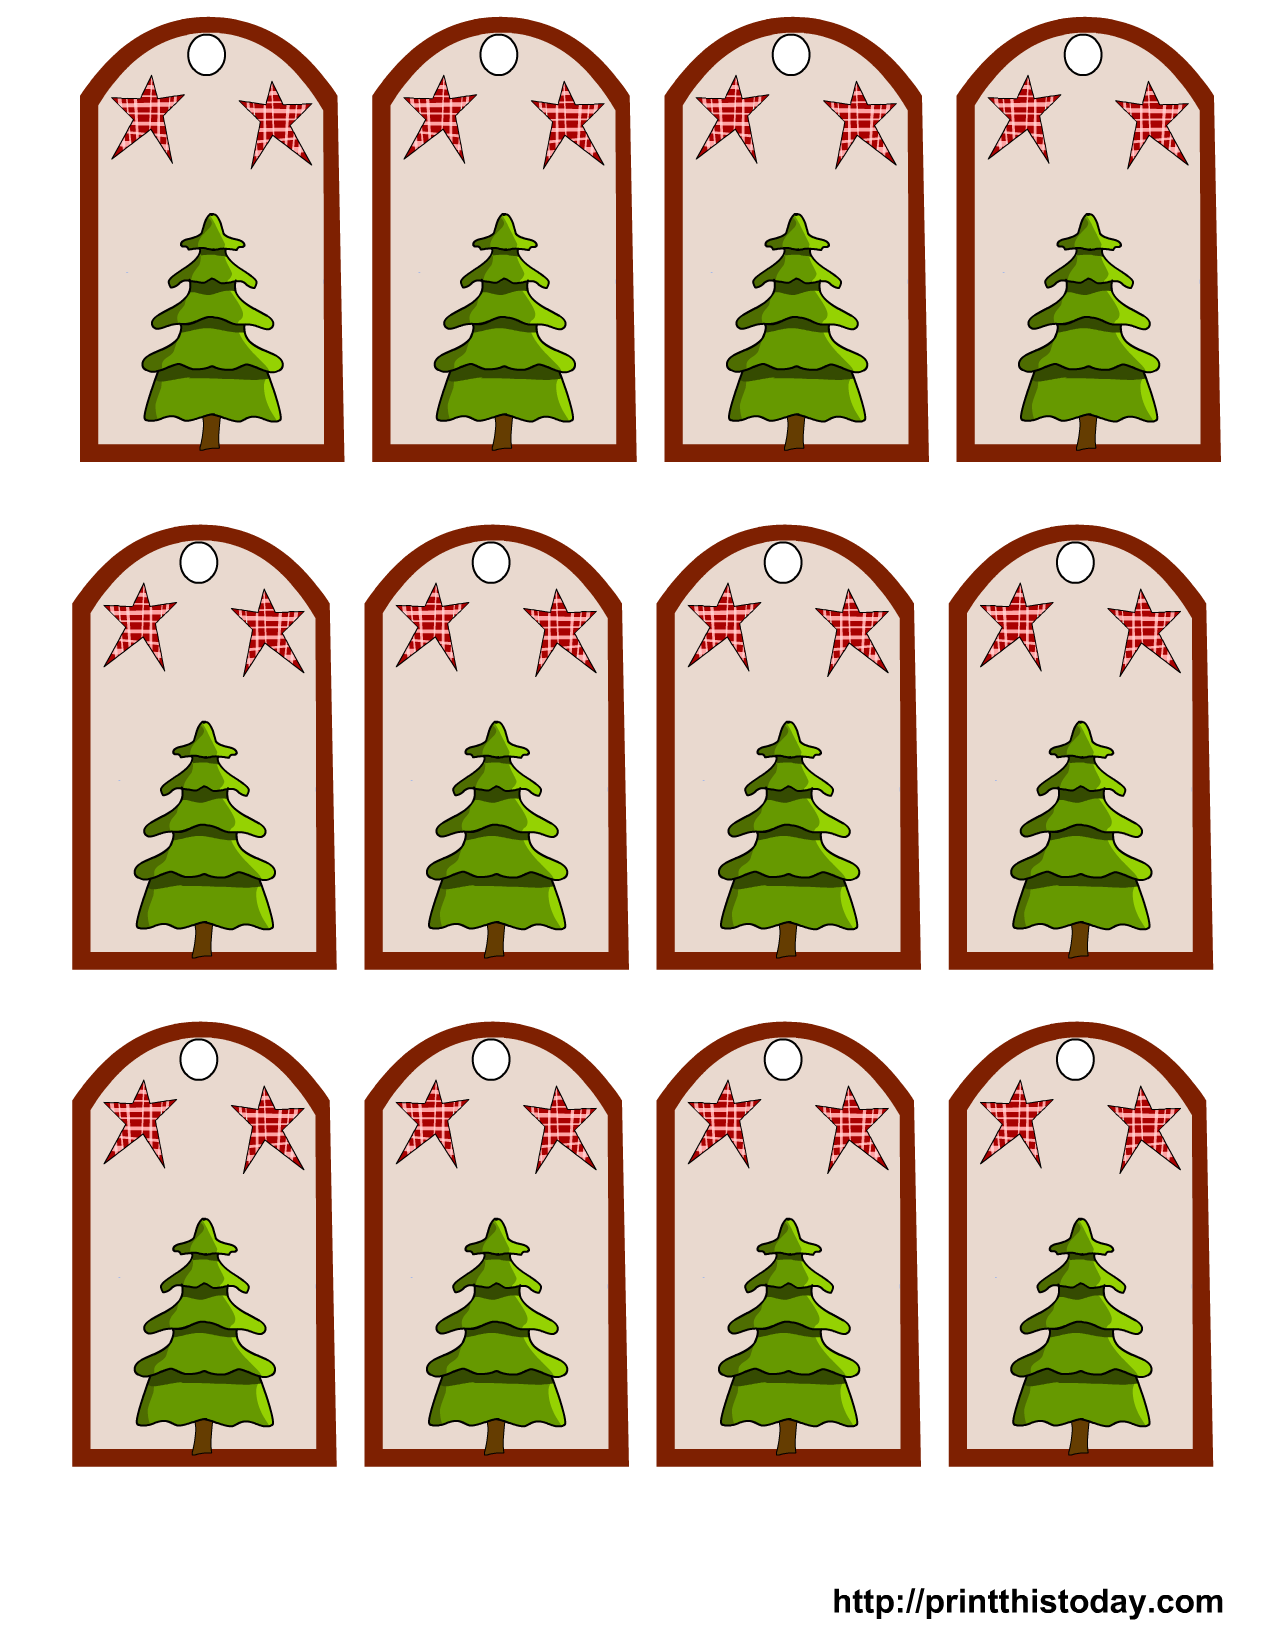 ... is another set of Christmas gift tags with Christmas tree and stars